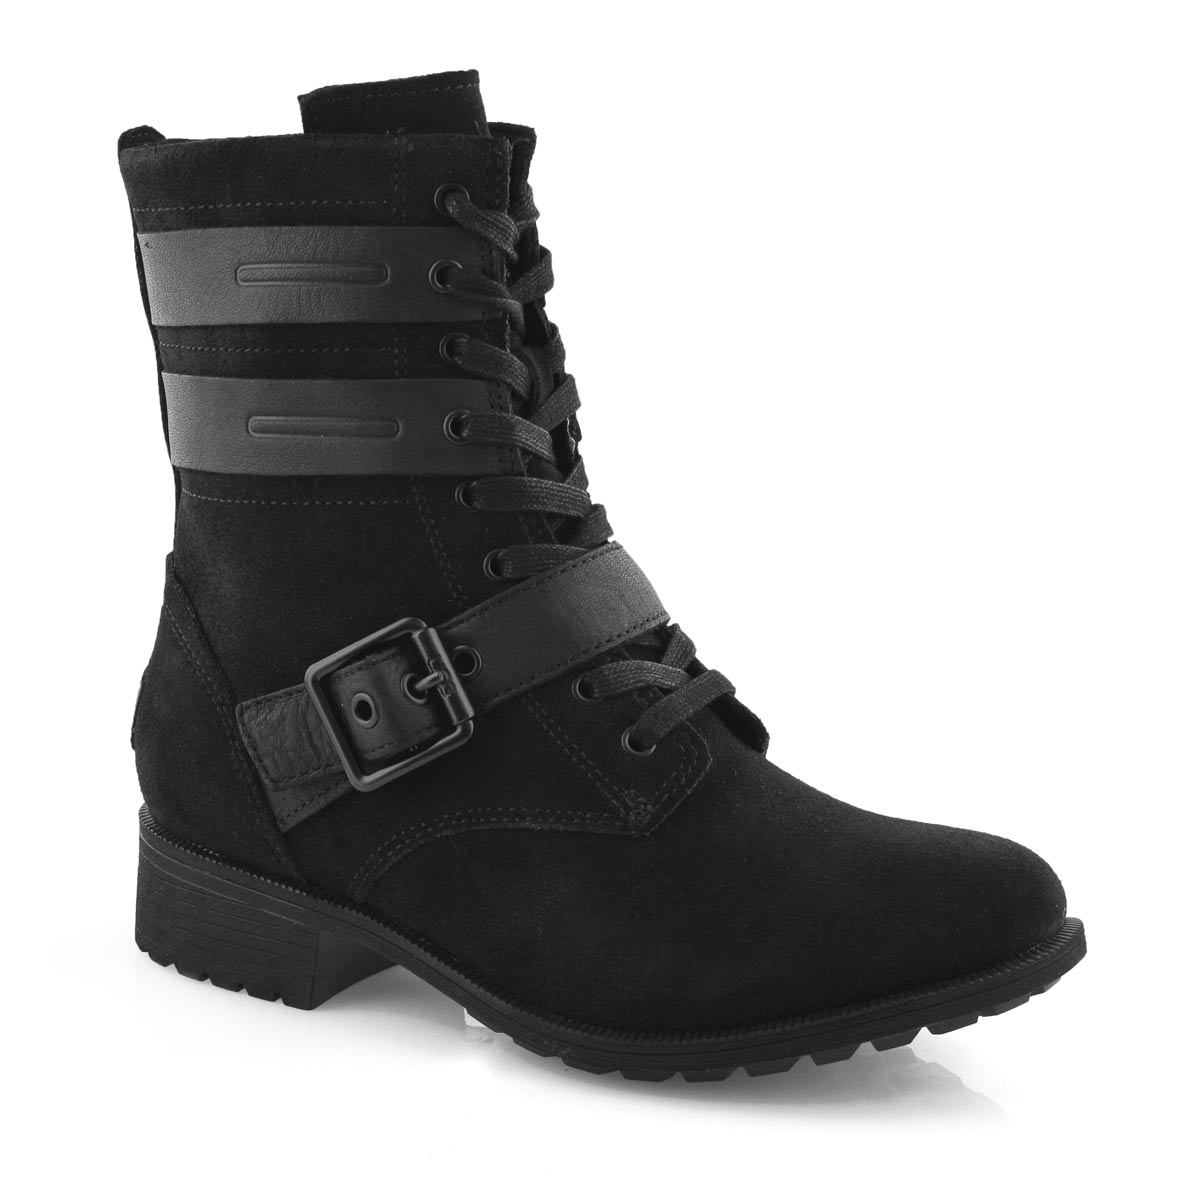 Lds Zia black lace up wtpf boot